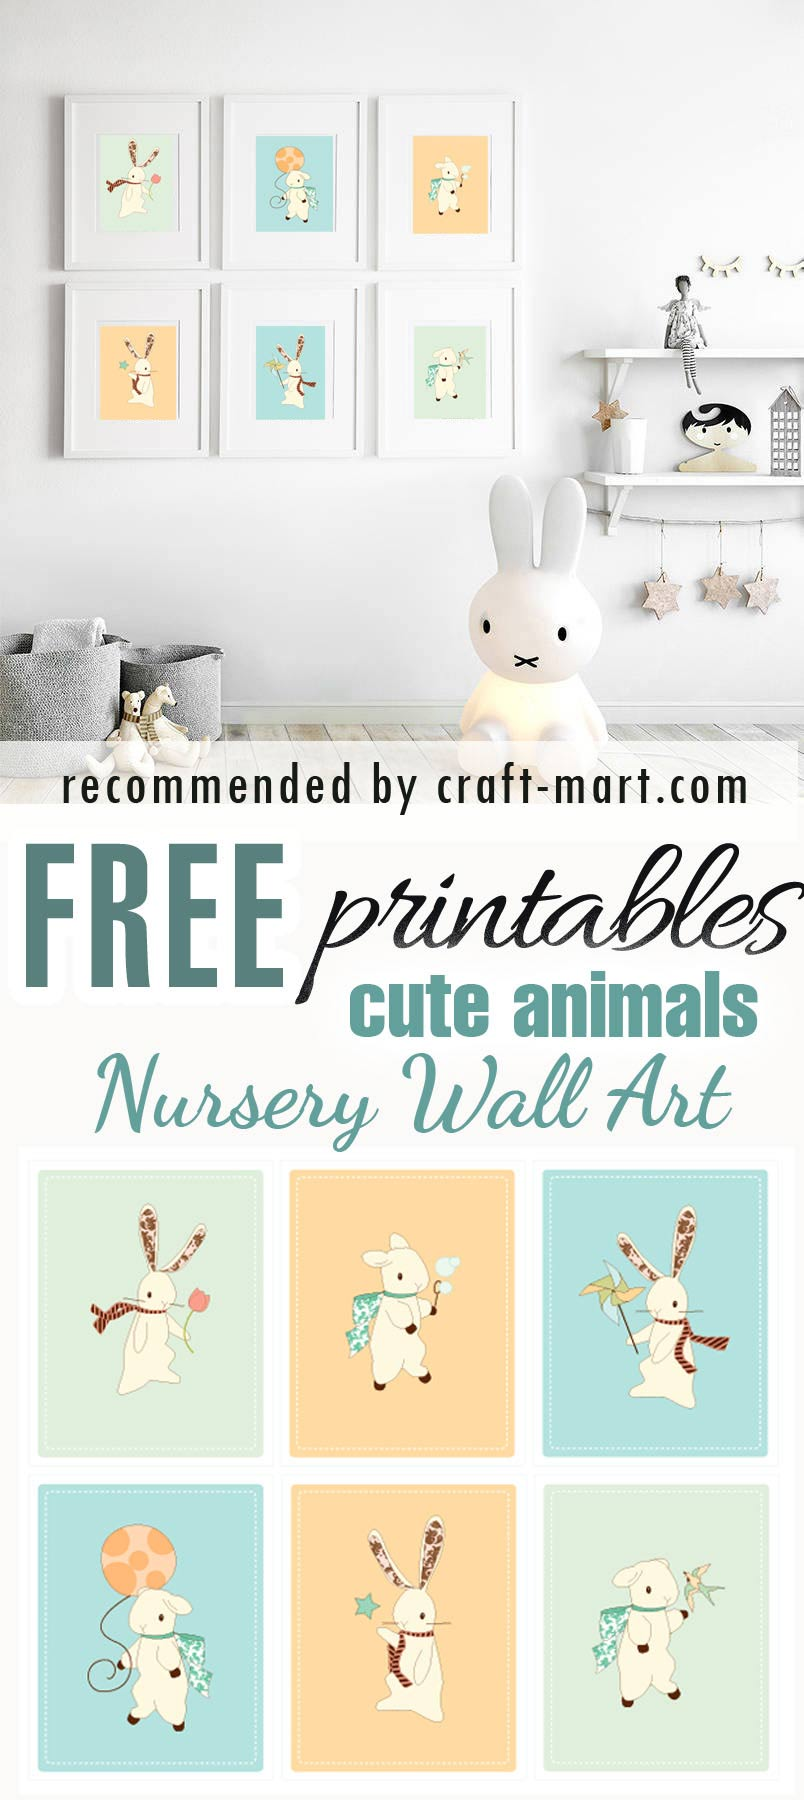 Cute Fairy Tale Animals Free Nursery Printables #freeprintables #freenurseryprints #freenurserywallart #cutenurseryprints #cuteanimalsfreeprintables #animalsfreenurseryprintables